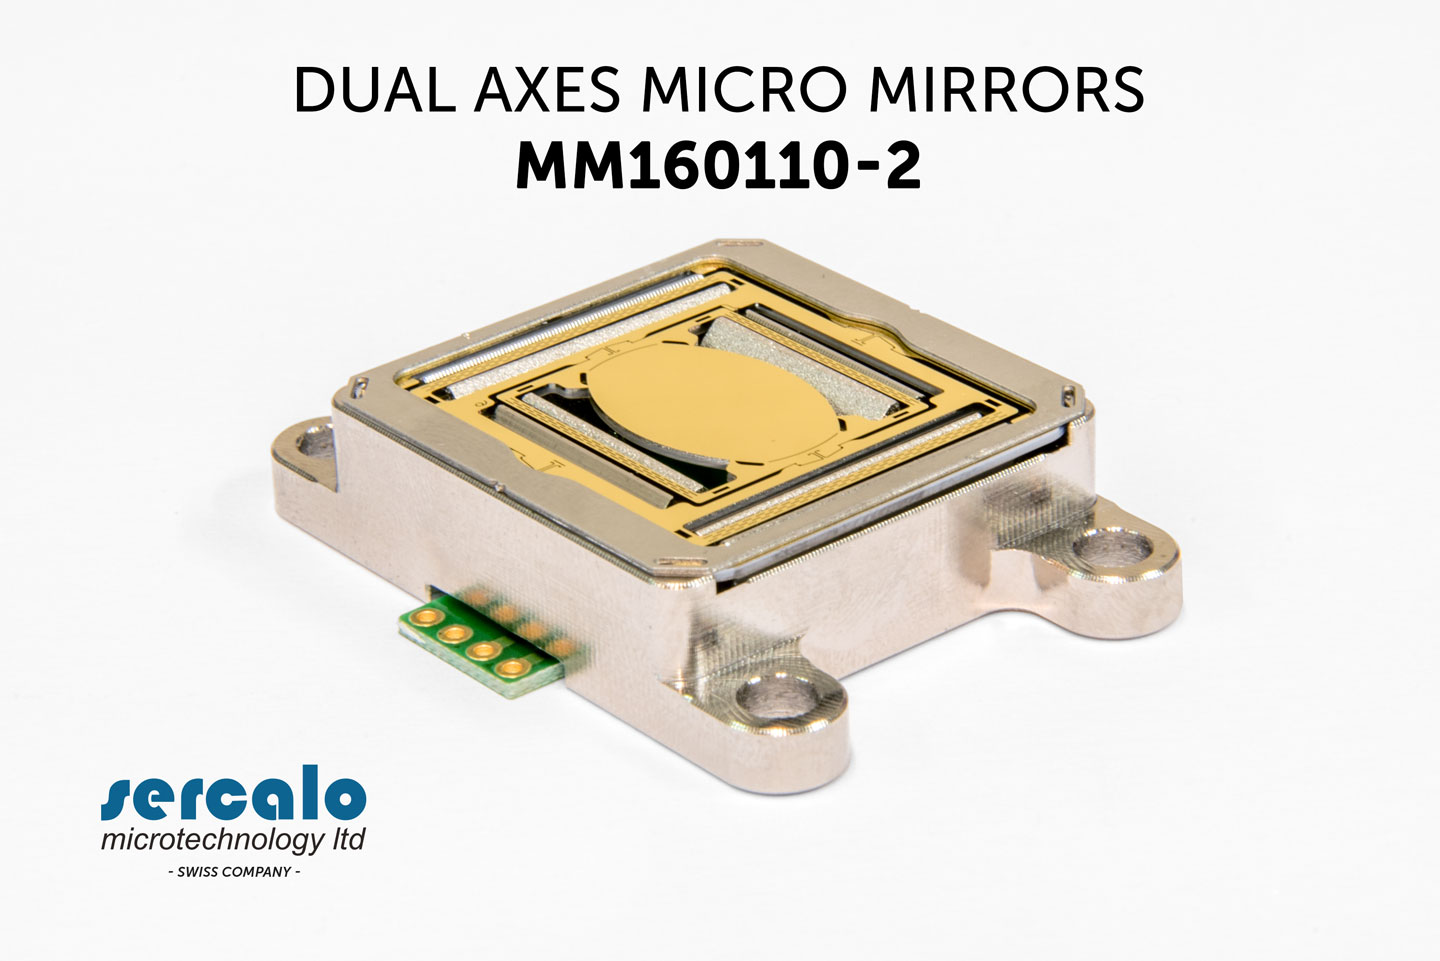 SERCALO DUAL AXES MAGNETIC MIRROR MM160110-2